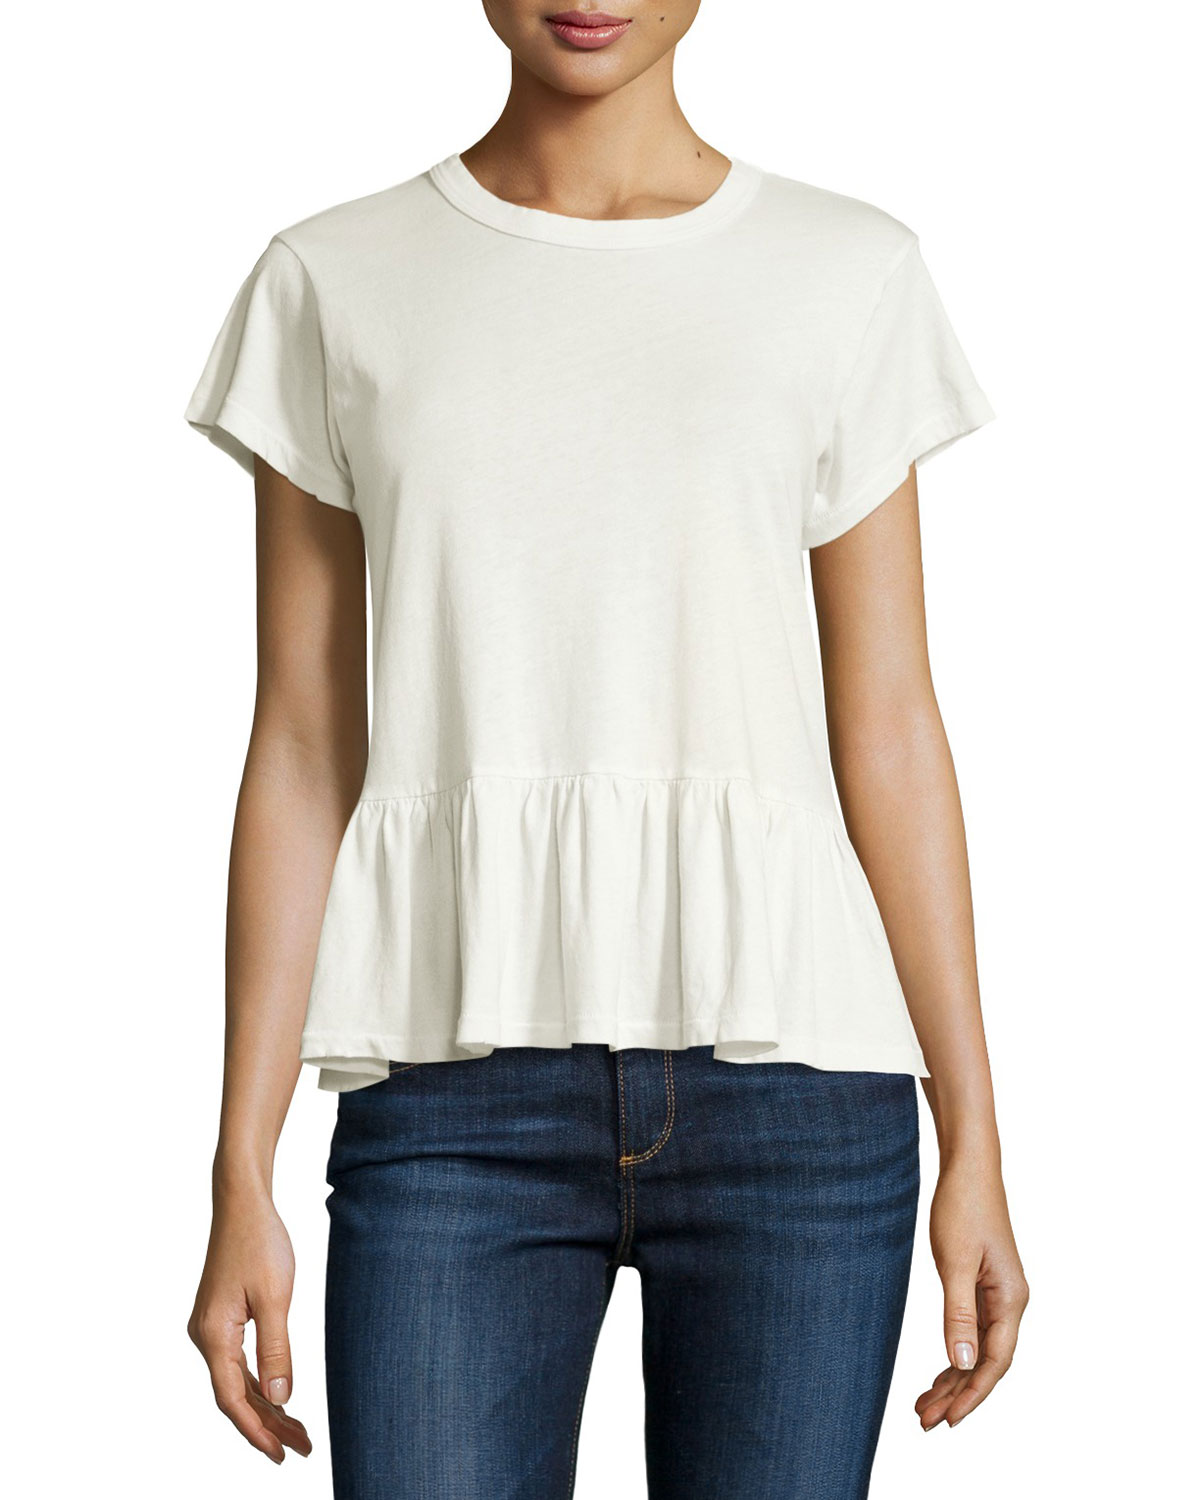 The Ruffle Washed Tee